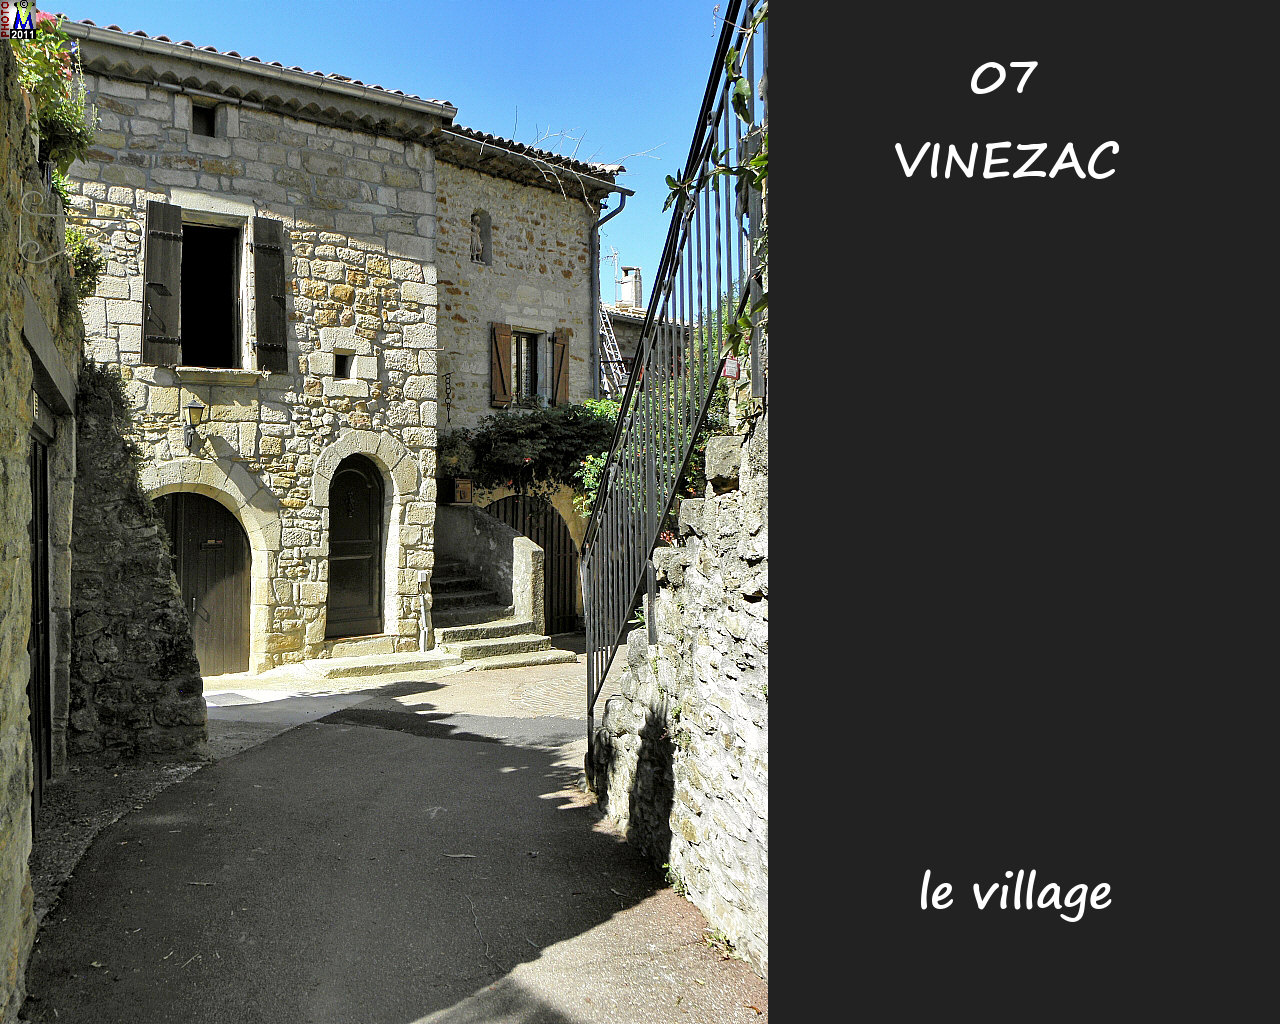 07VINEZAC_village_178.jpg